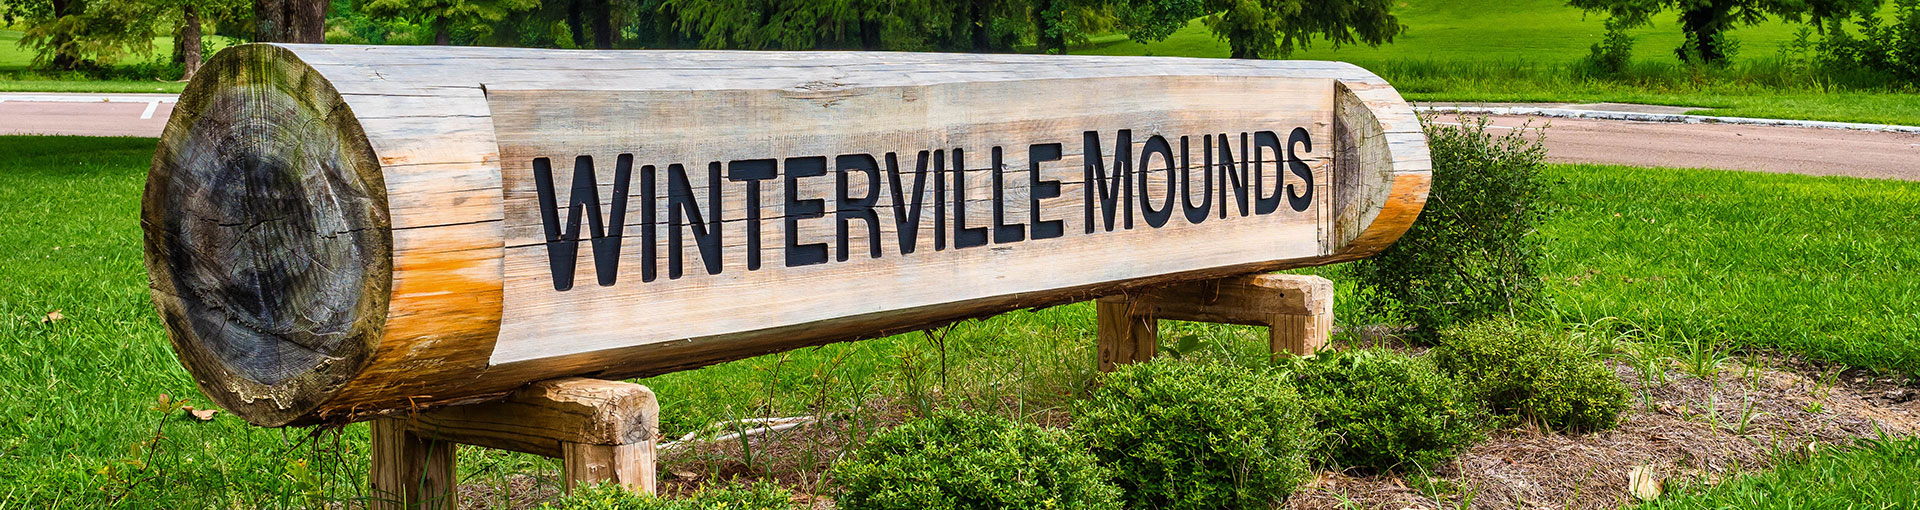 Winterville Mounds